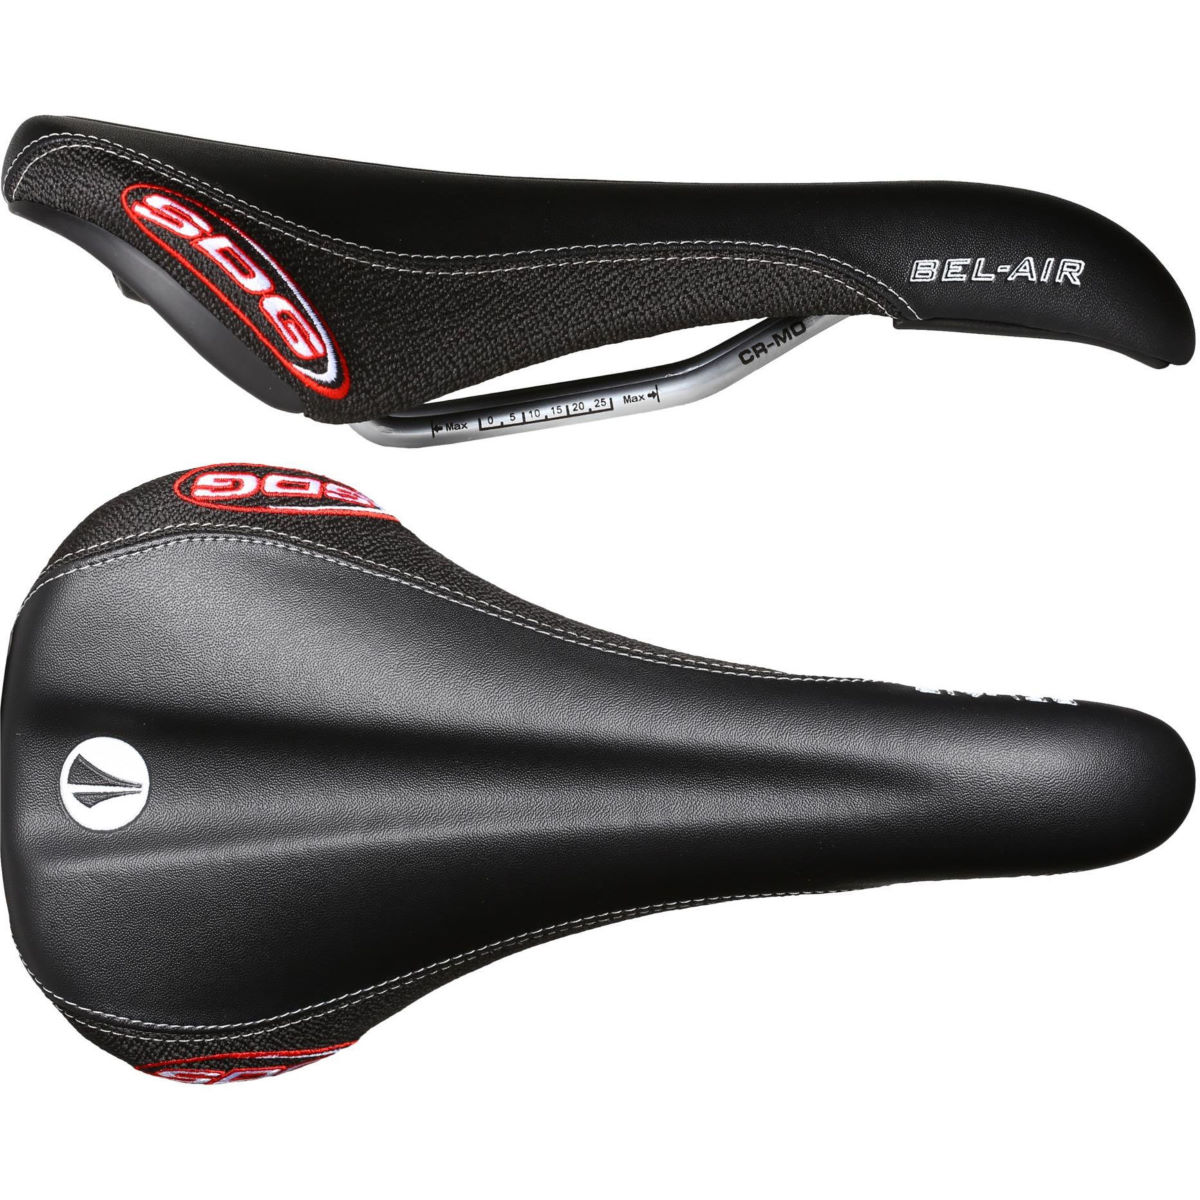 Selle SDG Bel Air RL (rails en chrome-molybdène) - Kevlar Noir/Noir